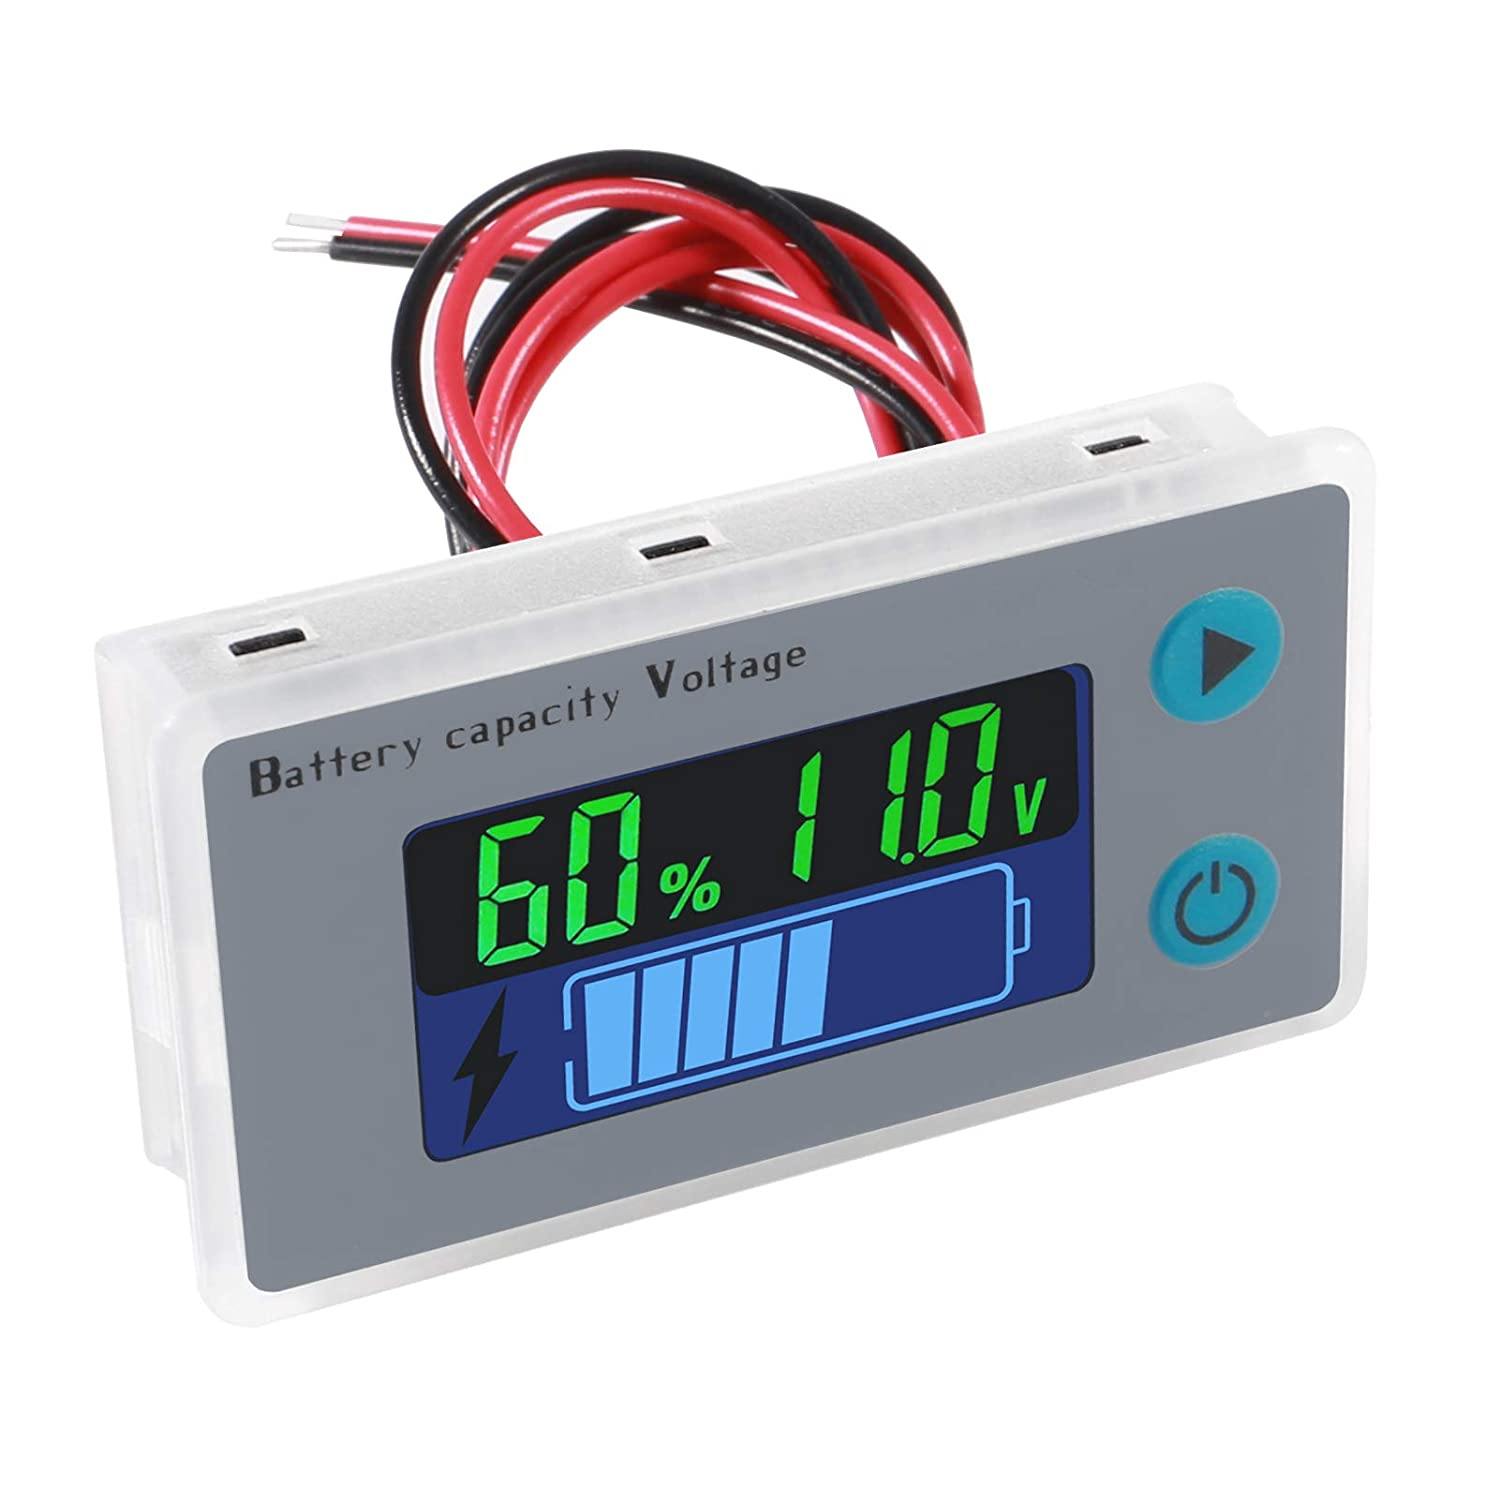 LCD Battery Meter Monitor, 48V Digital Battery Remaining Capacity Percentage Level Voltage Temperature Monitor Tester, 10-100V 12V 36V 24V 48 Volt Electric Boat Battery Power Analyzer with Cable